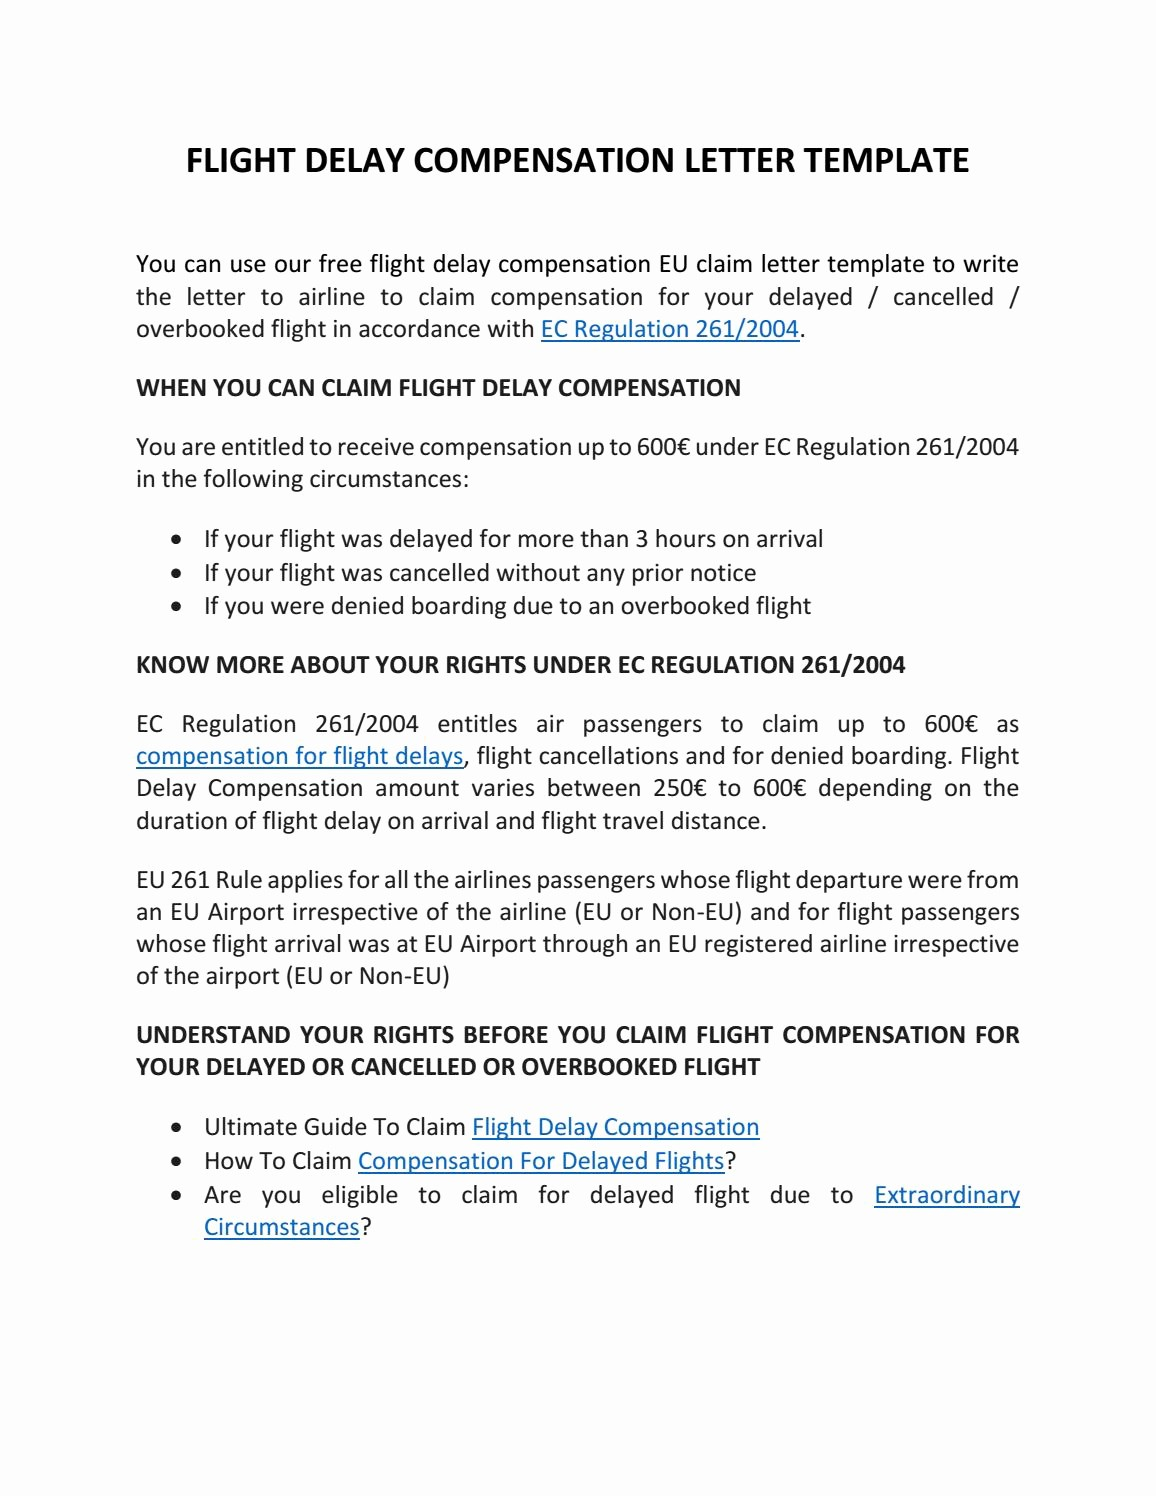 Claim Denial Letter Sample Airline Unique Flight Pensation Letter Template by Claim Flights issuu